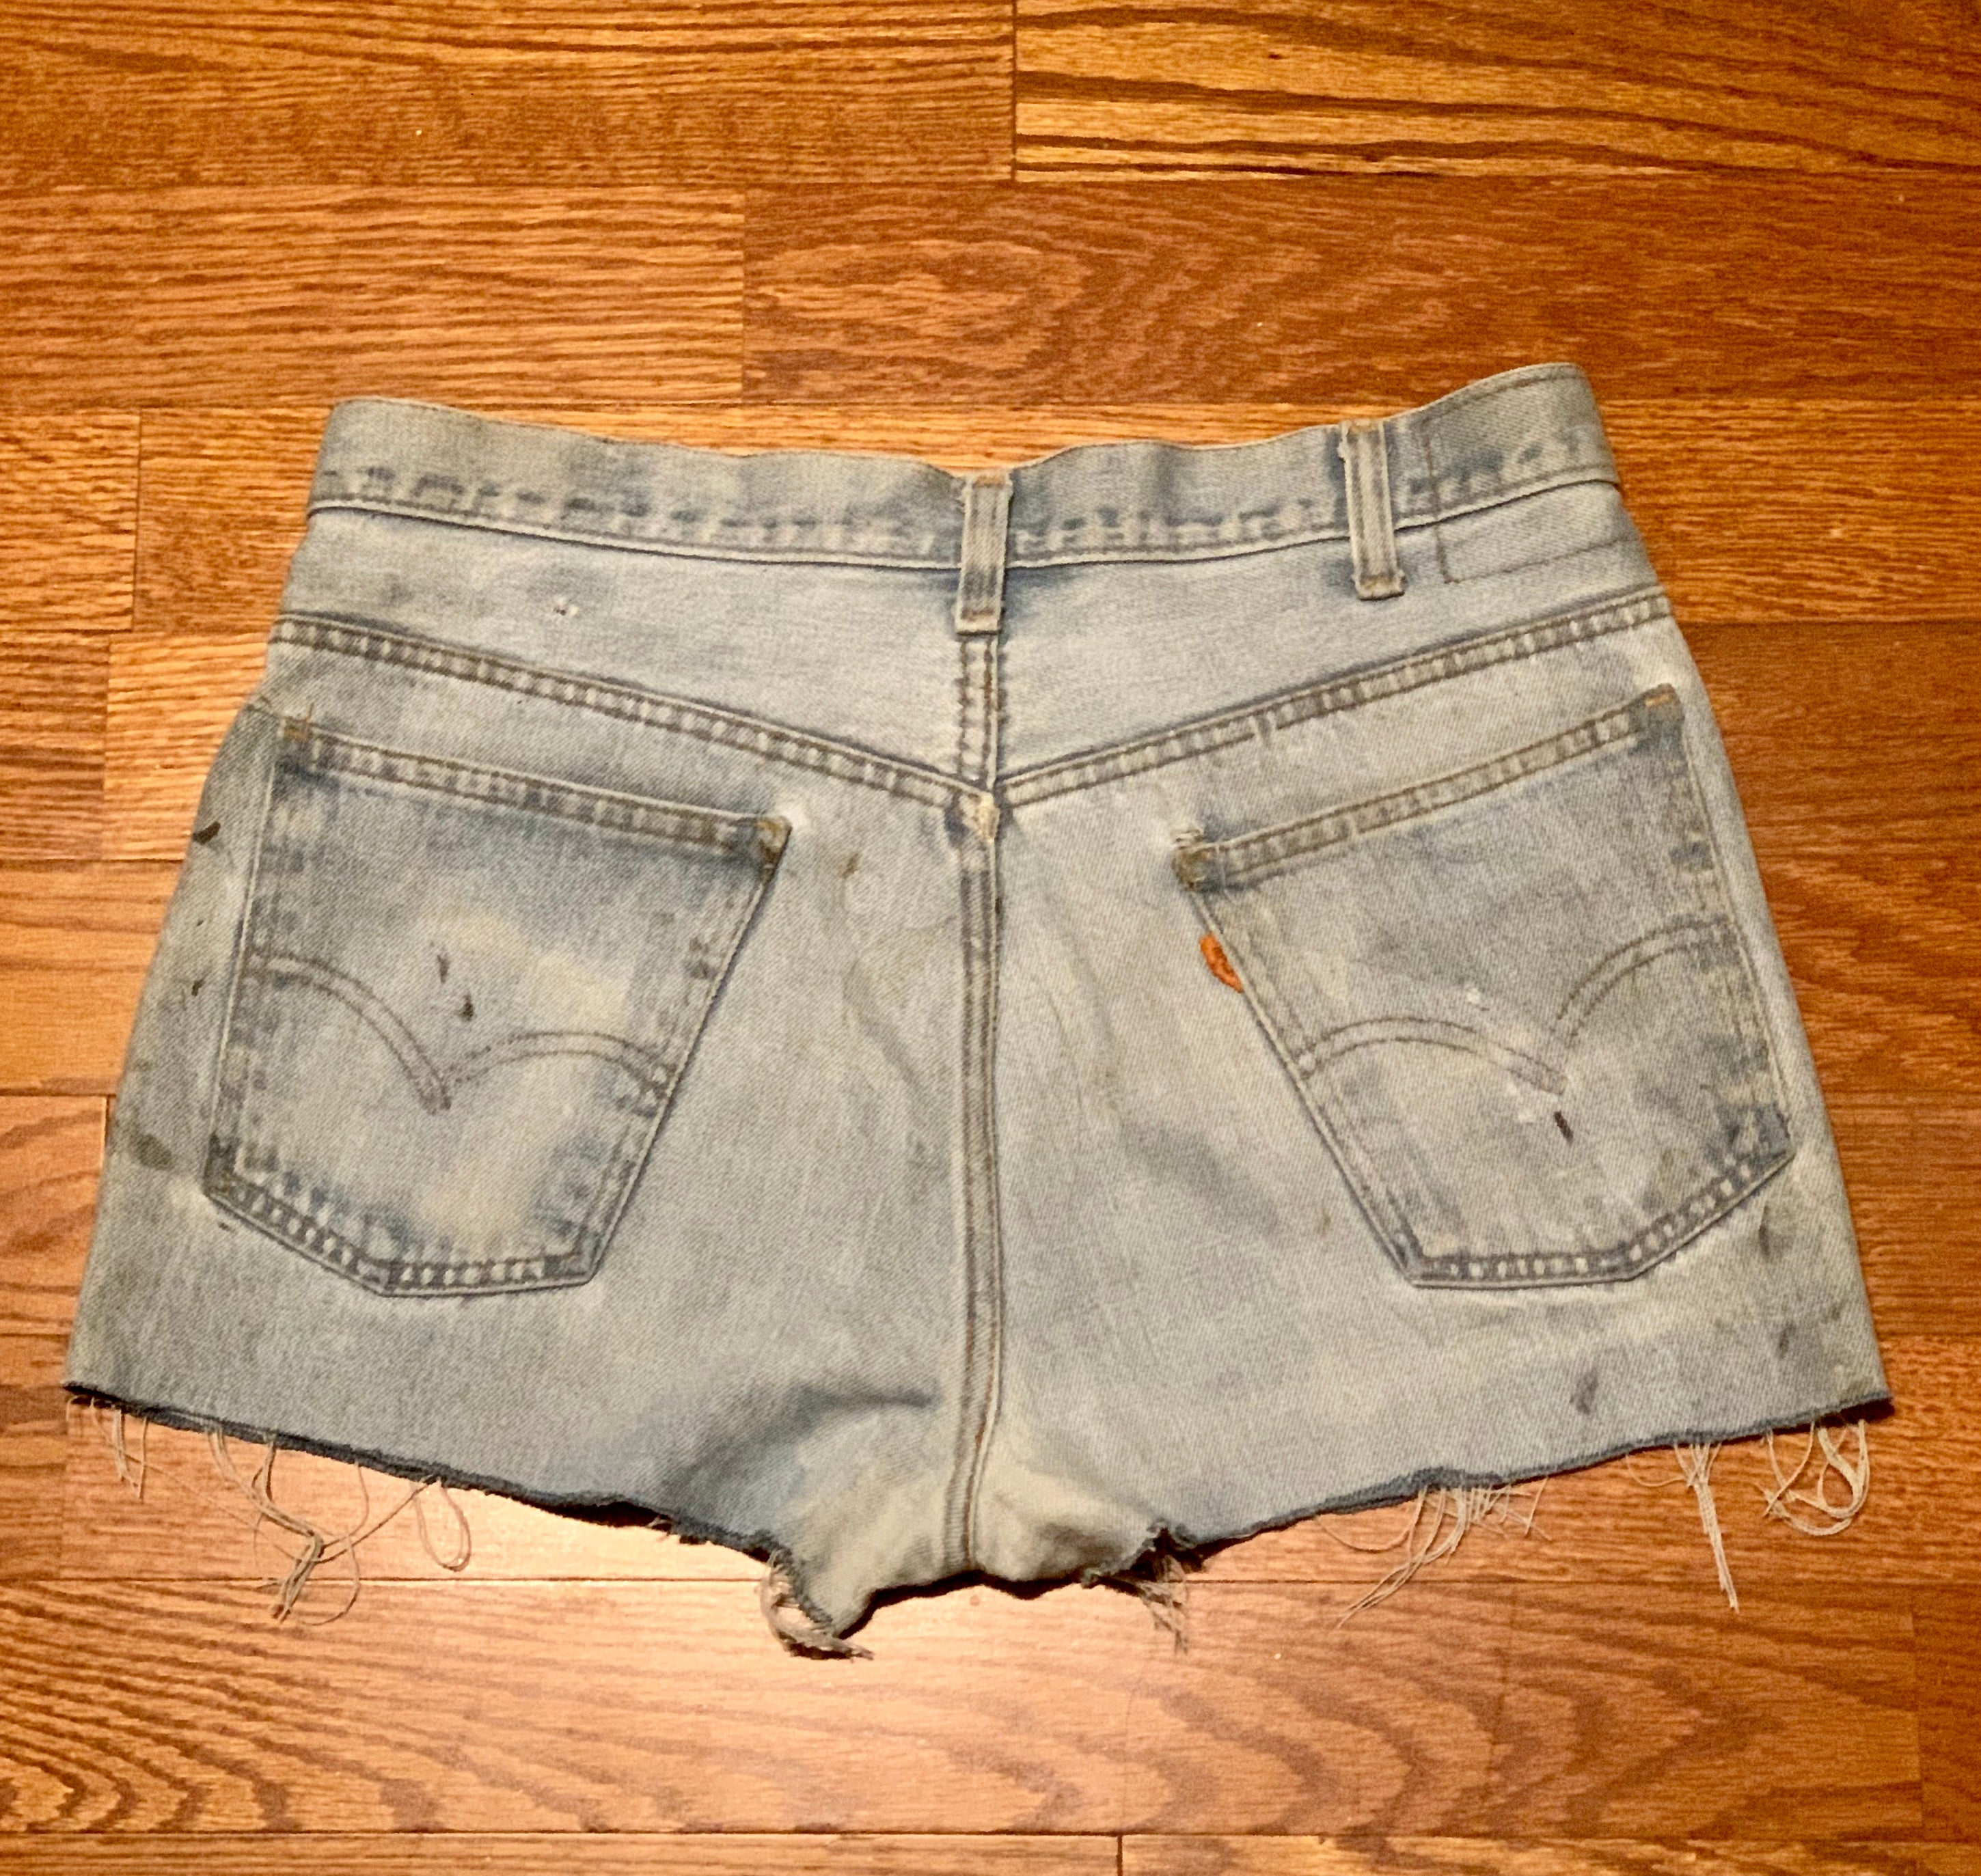 *SOLD * SEX PISTOLS 1977 Vintage Levi's Cut Off Shorts - Wild Ones